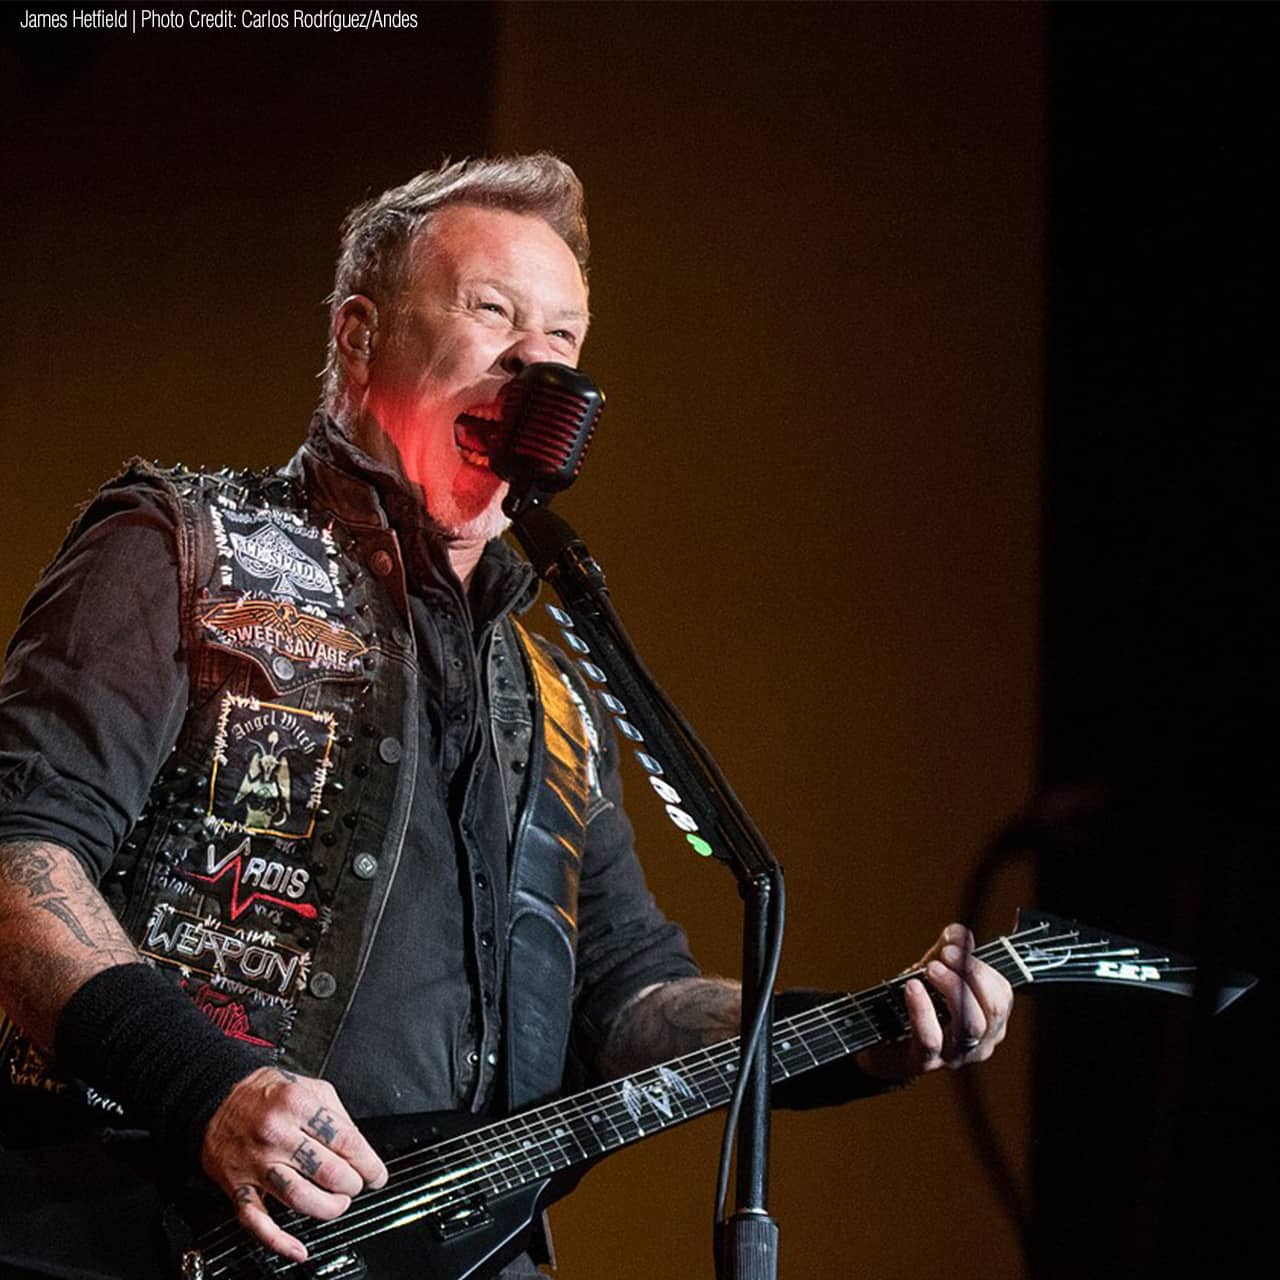 Last month, there was a report about a Canadian woman blasting METALLICA to scare away a cougar.  And now, singer JAMES HETFIELD has called her, so she got to thank him personally for his cougar-scaring music.